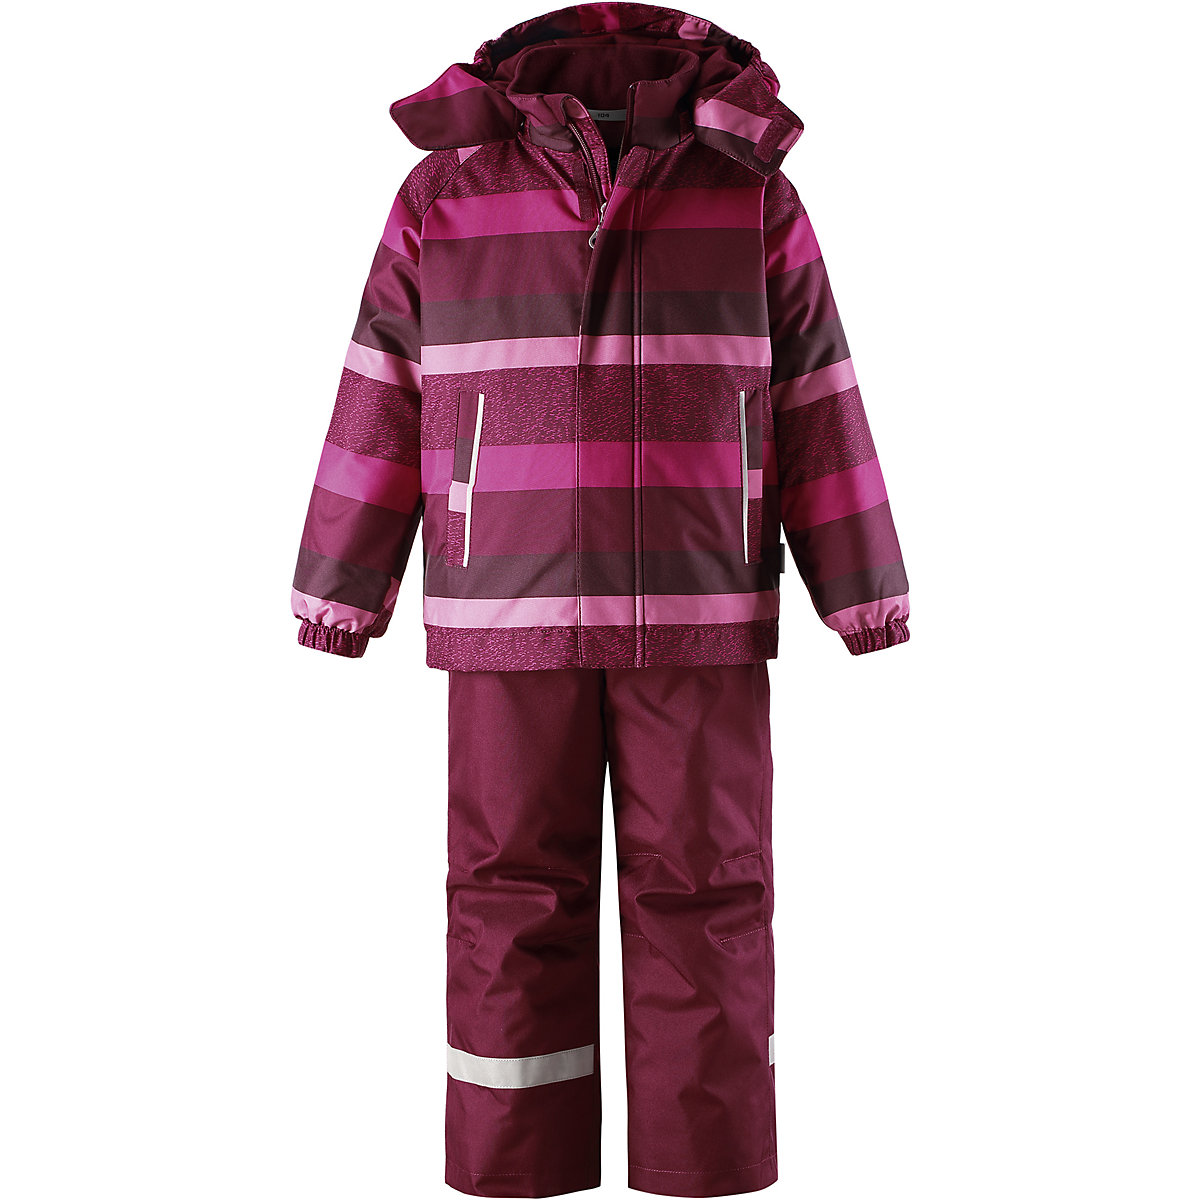 Children's Sets LASSIE for girls 8630919 Winter Track Suit Kids Children clothes Warm children s sets lassie for girls 8631960 winter track suit kids children clothes warm